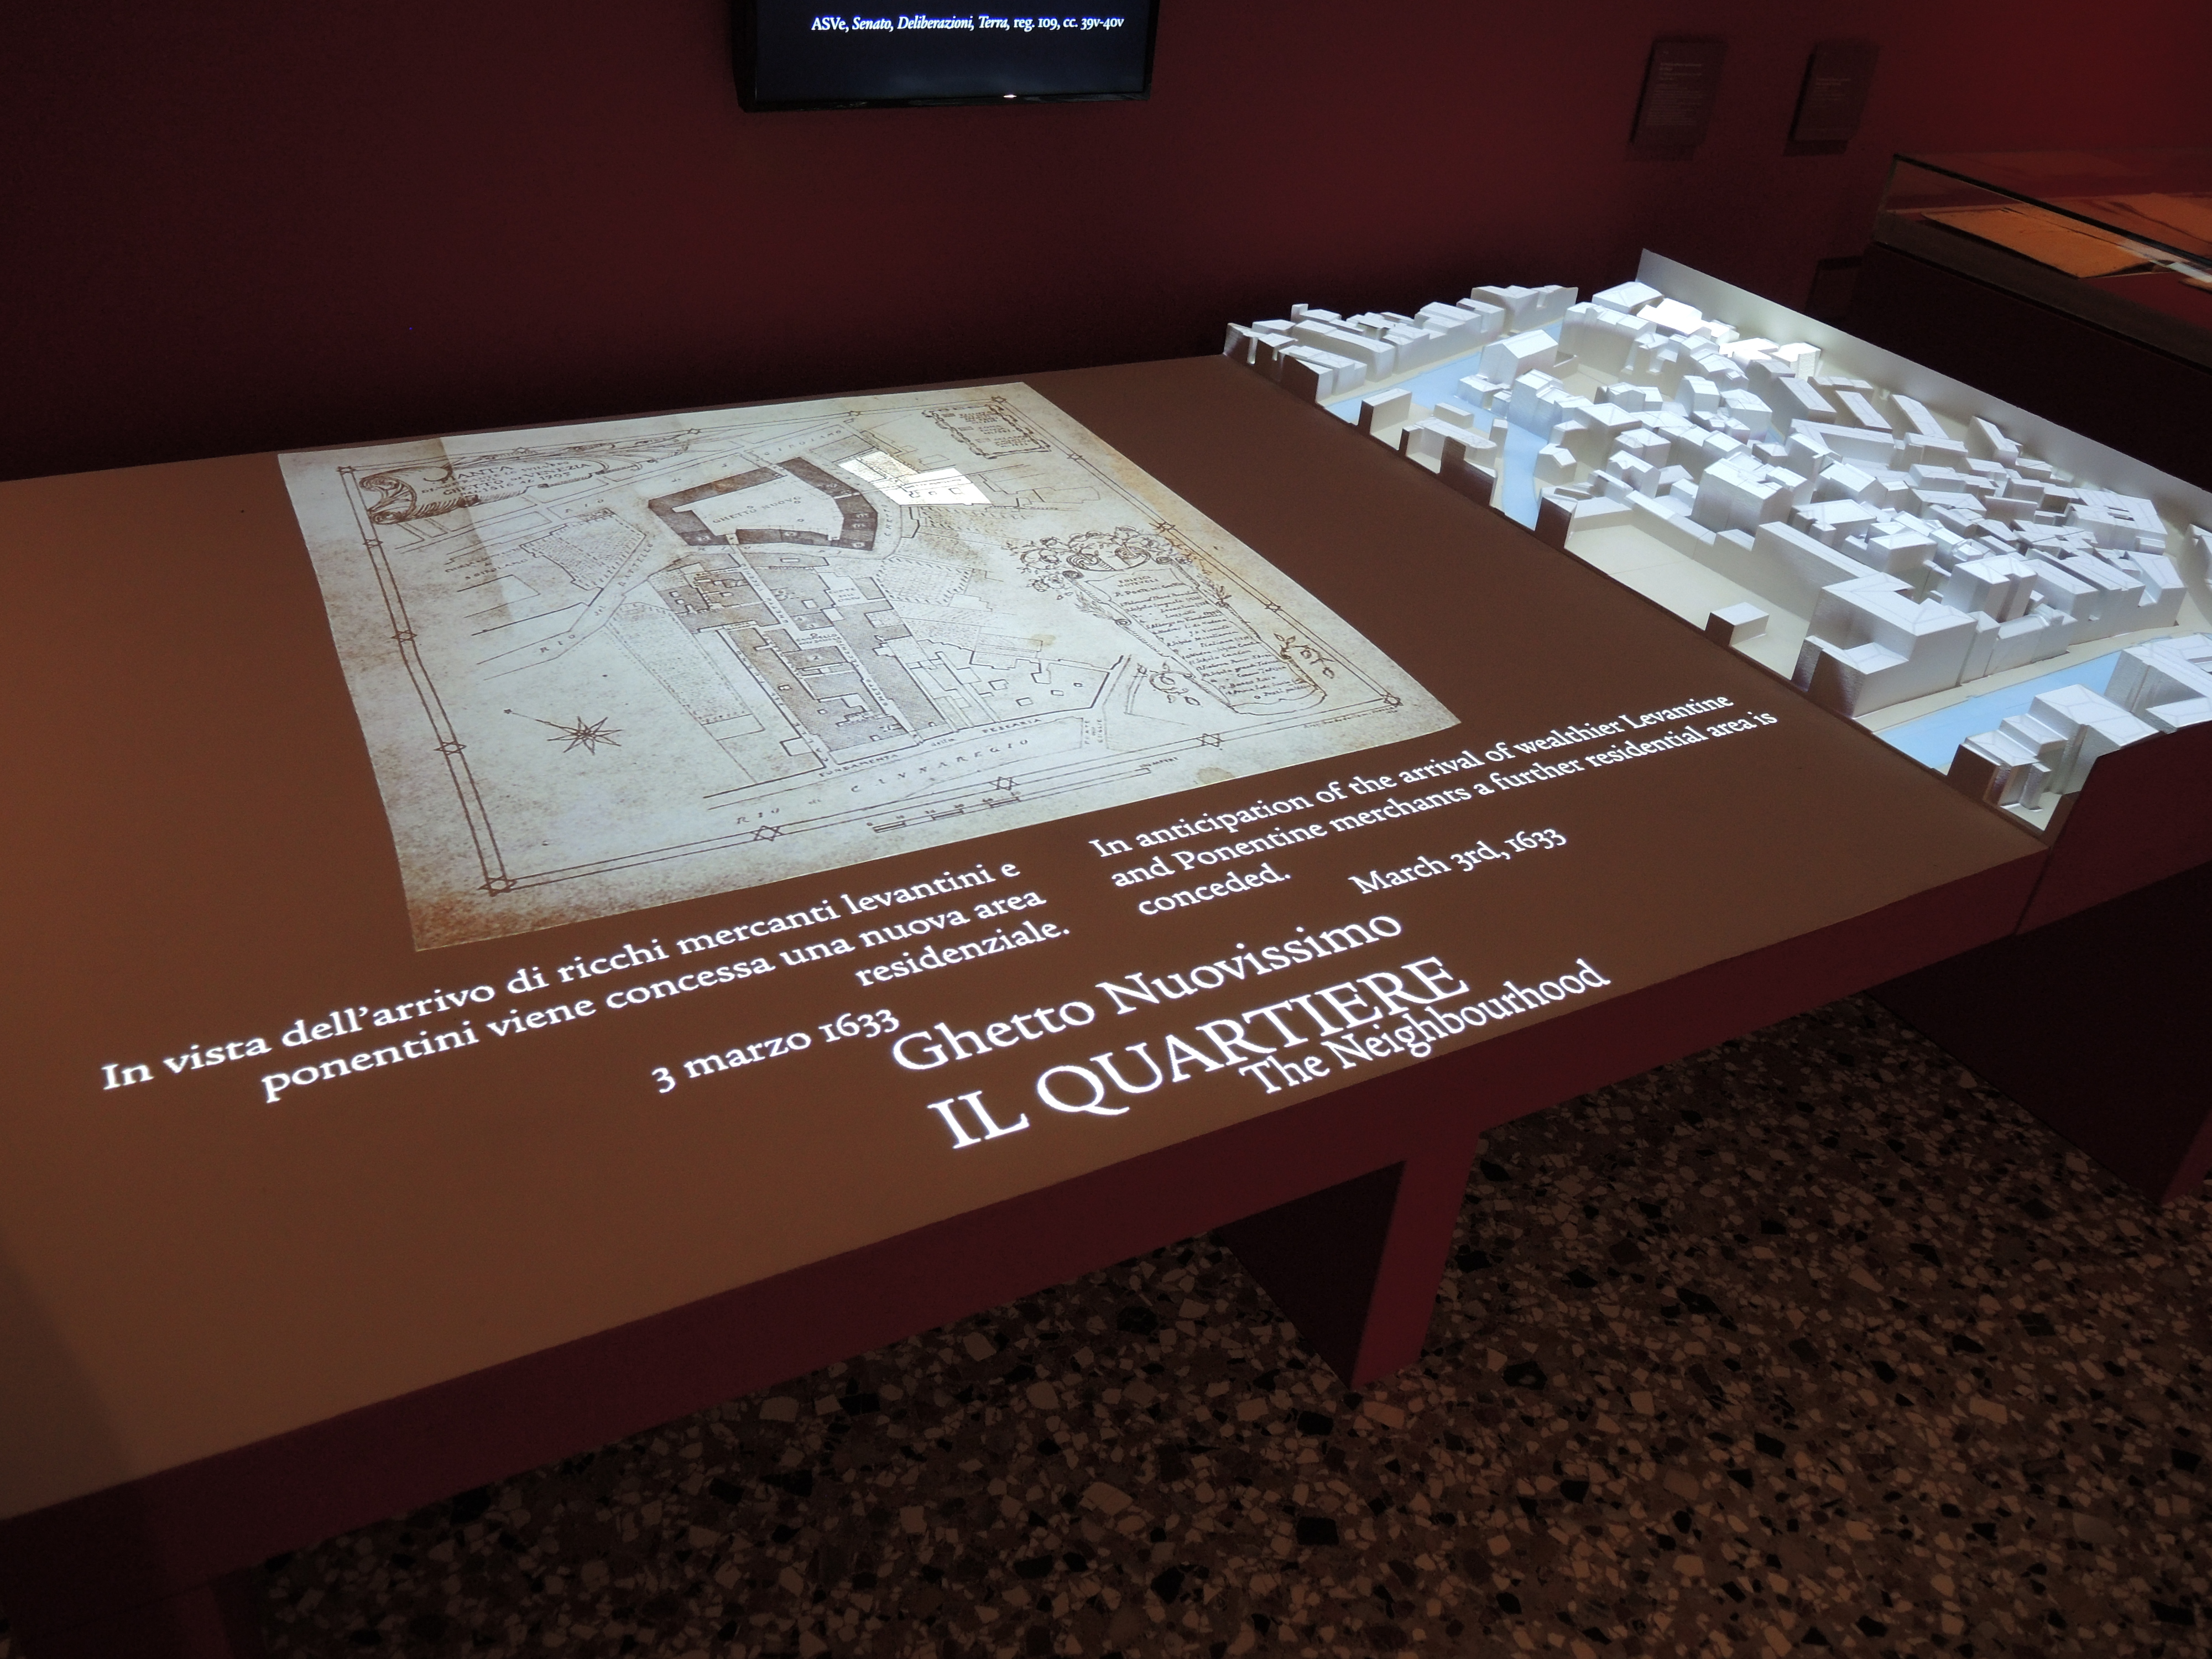 A virtual reconstruction of the Ghetto explains to visitors through a screen the evolution of the Ghetto through the centuries